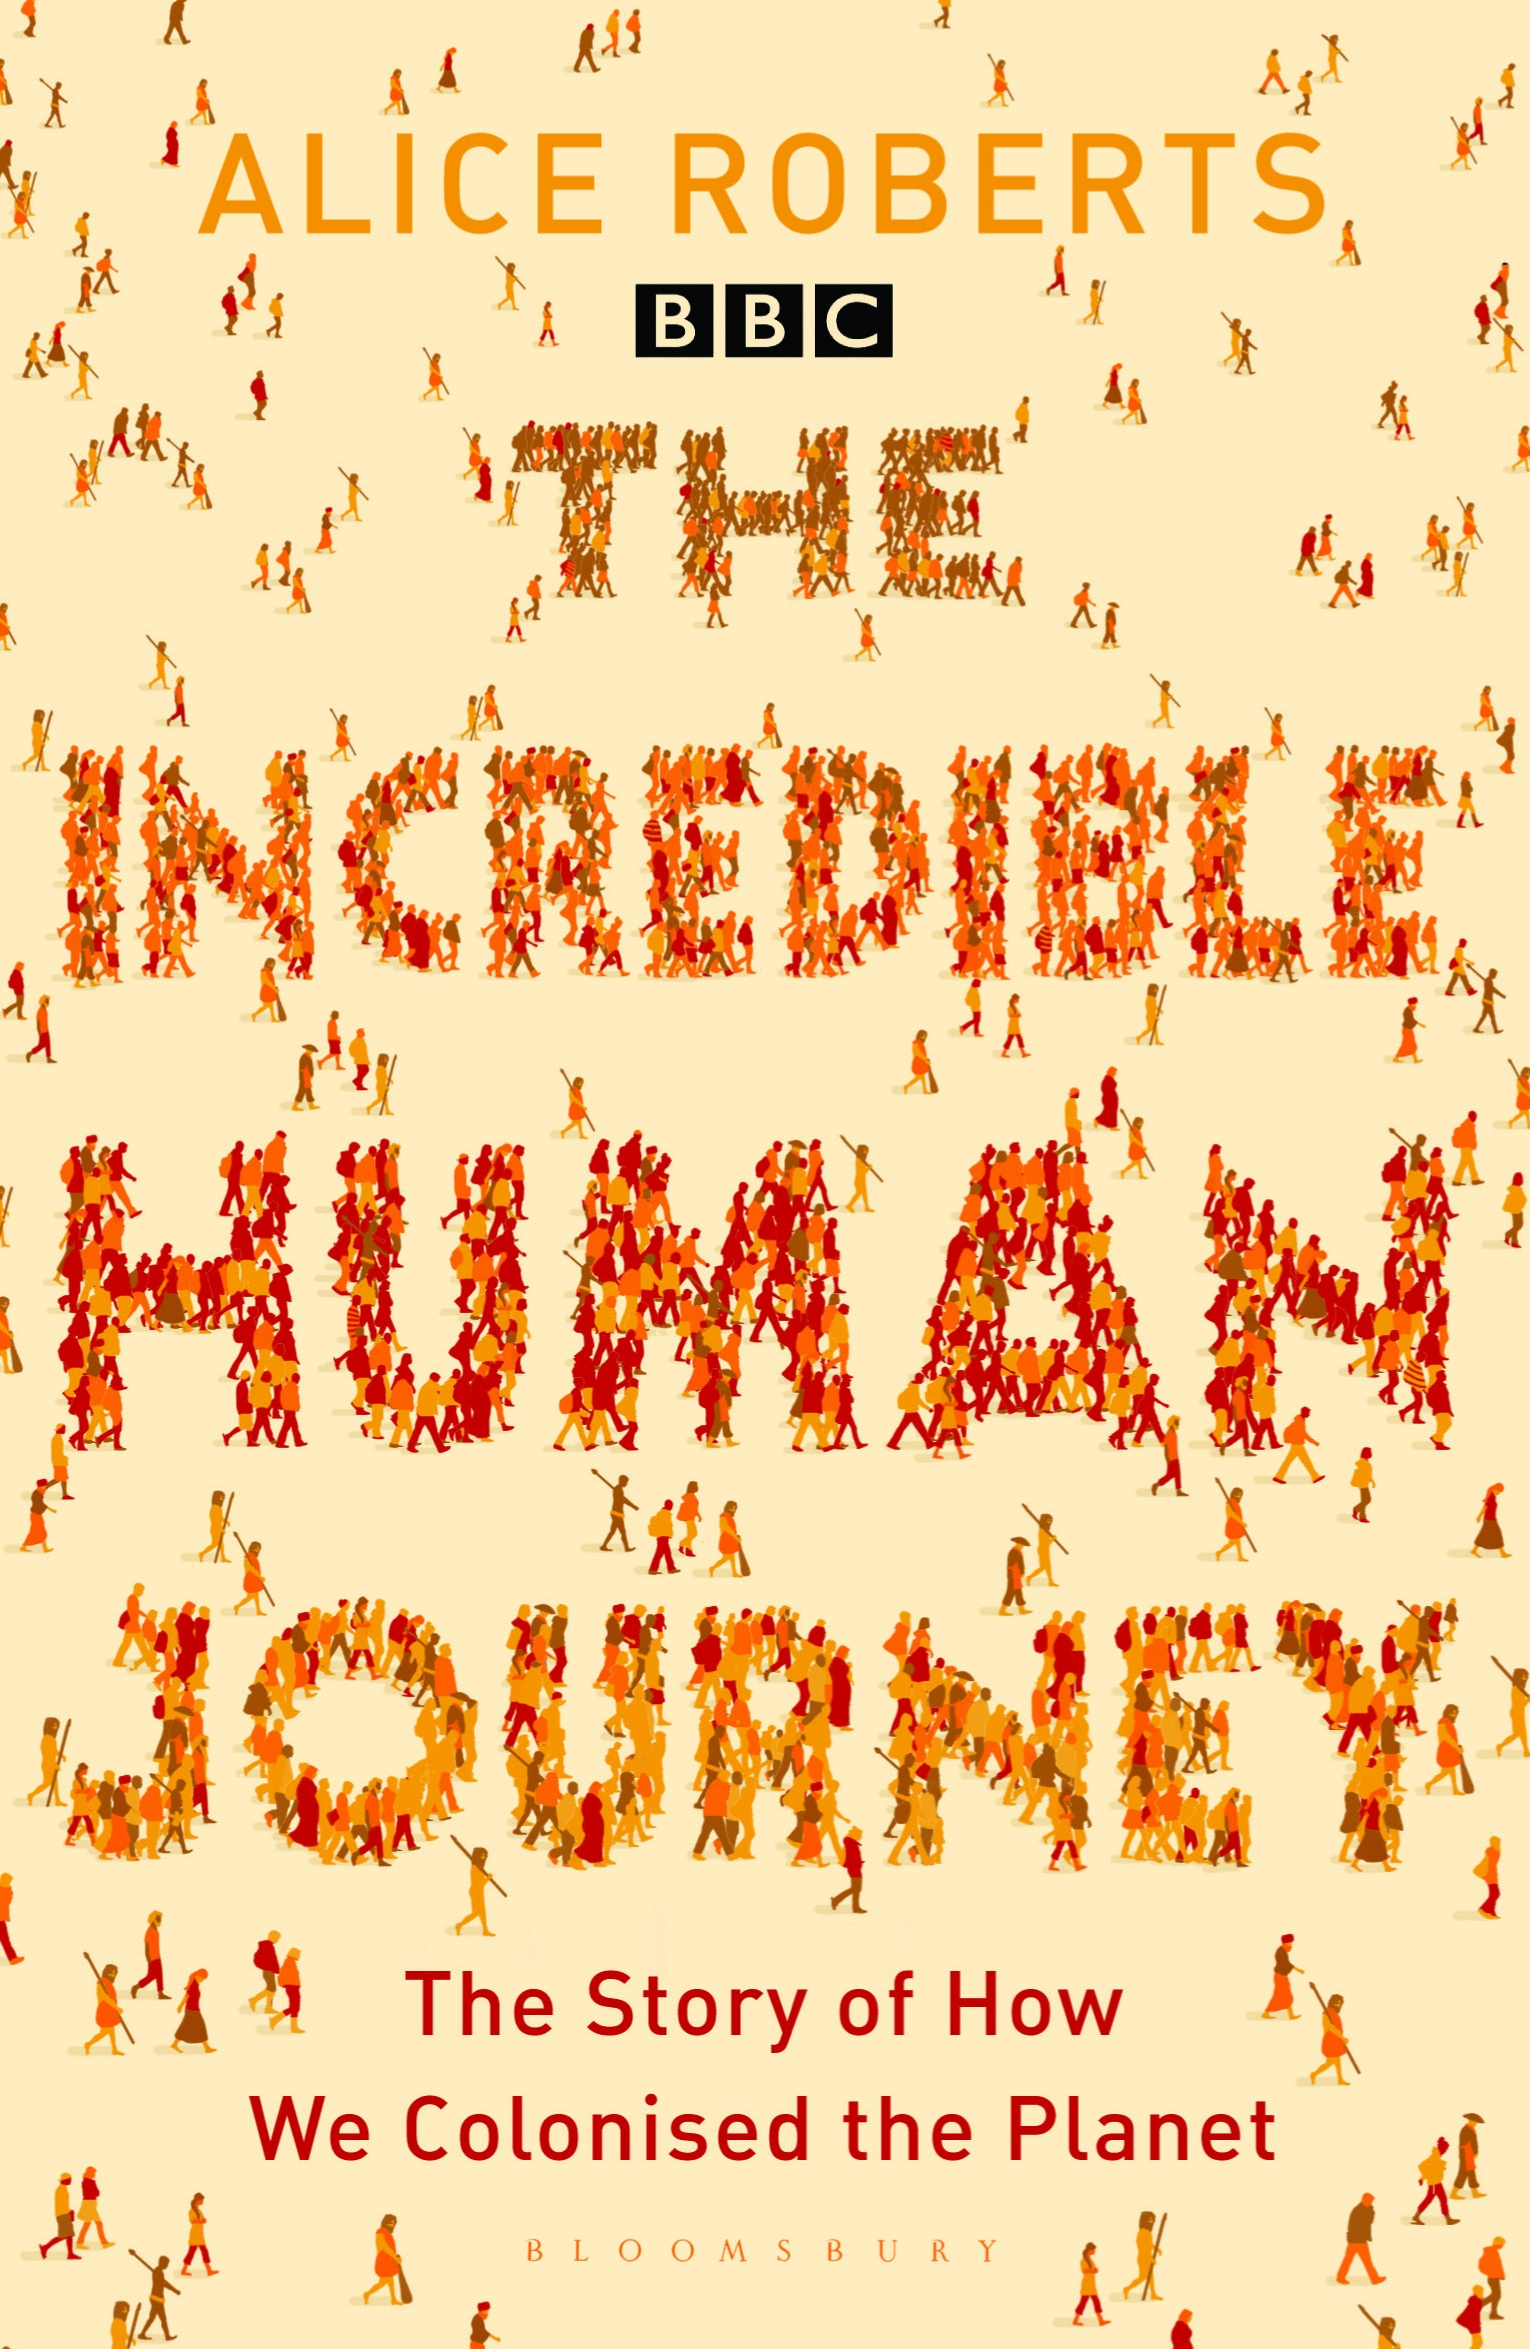 The Incredible Human Journey